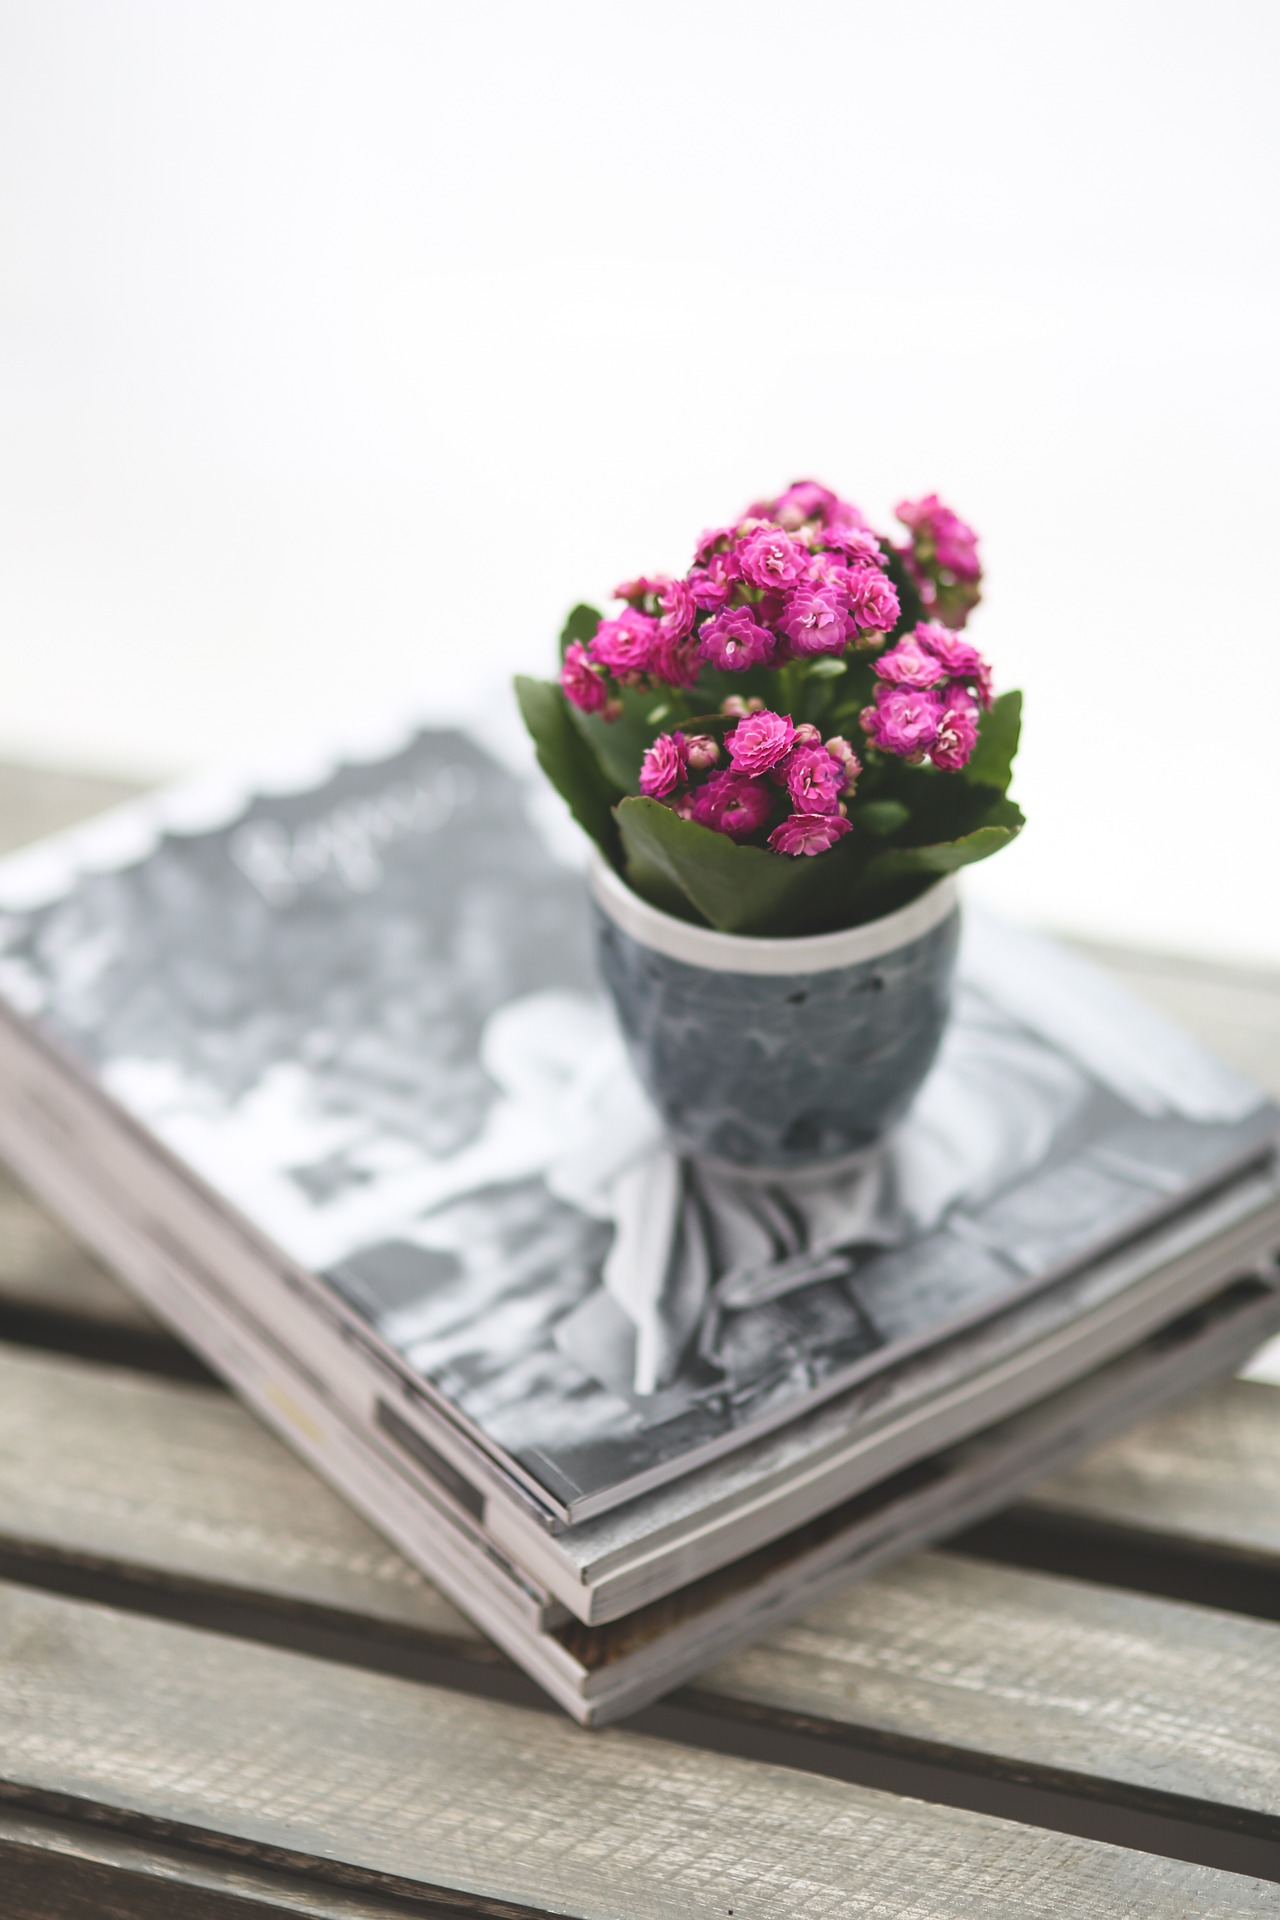 Add colour with the right house plants